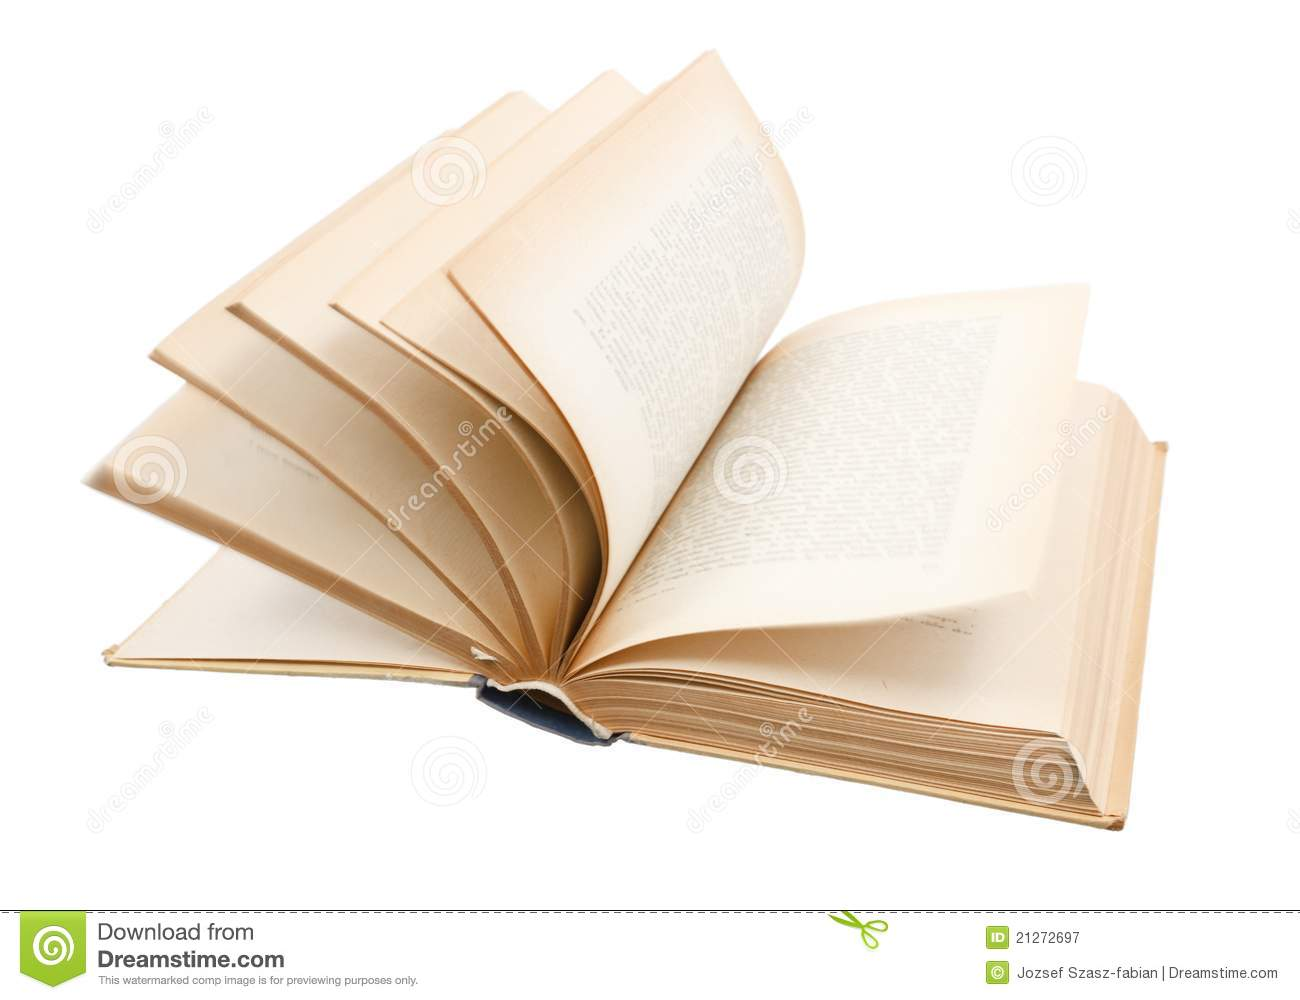 Stock Illustration Stacked Books as well Stock Photo Graduation Cap Diploma Stack Of besides  as well Linkedin Updates And Changes Every Lawyer Should Know as well Royalty Free Stock Photography Family Wording Relatives Concept Image37738777. on vector books